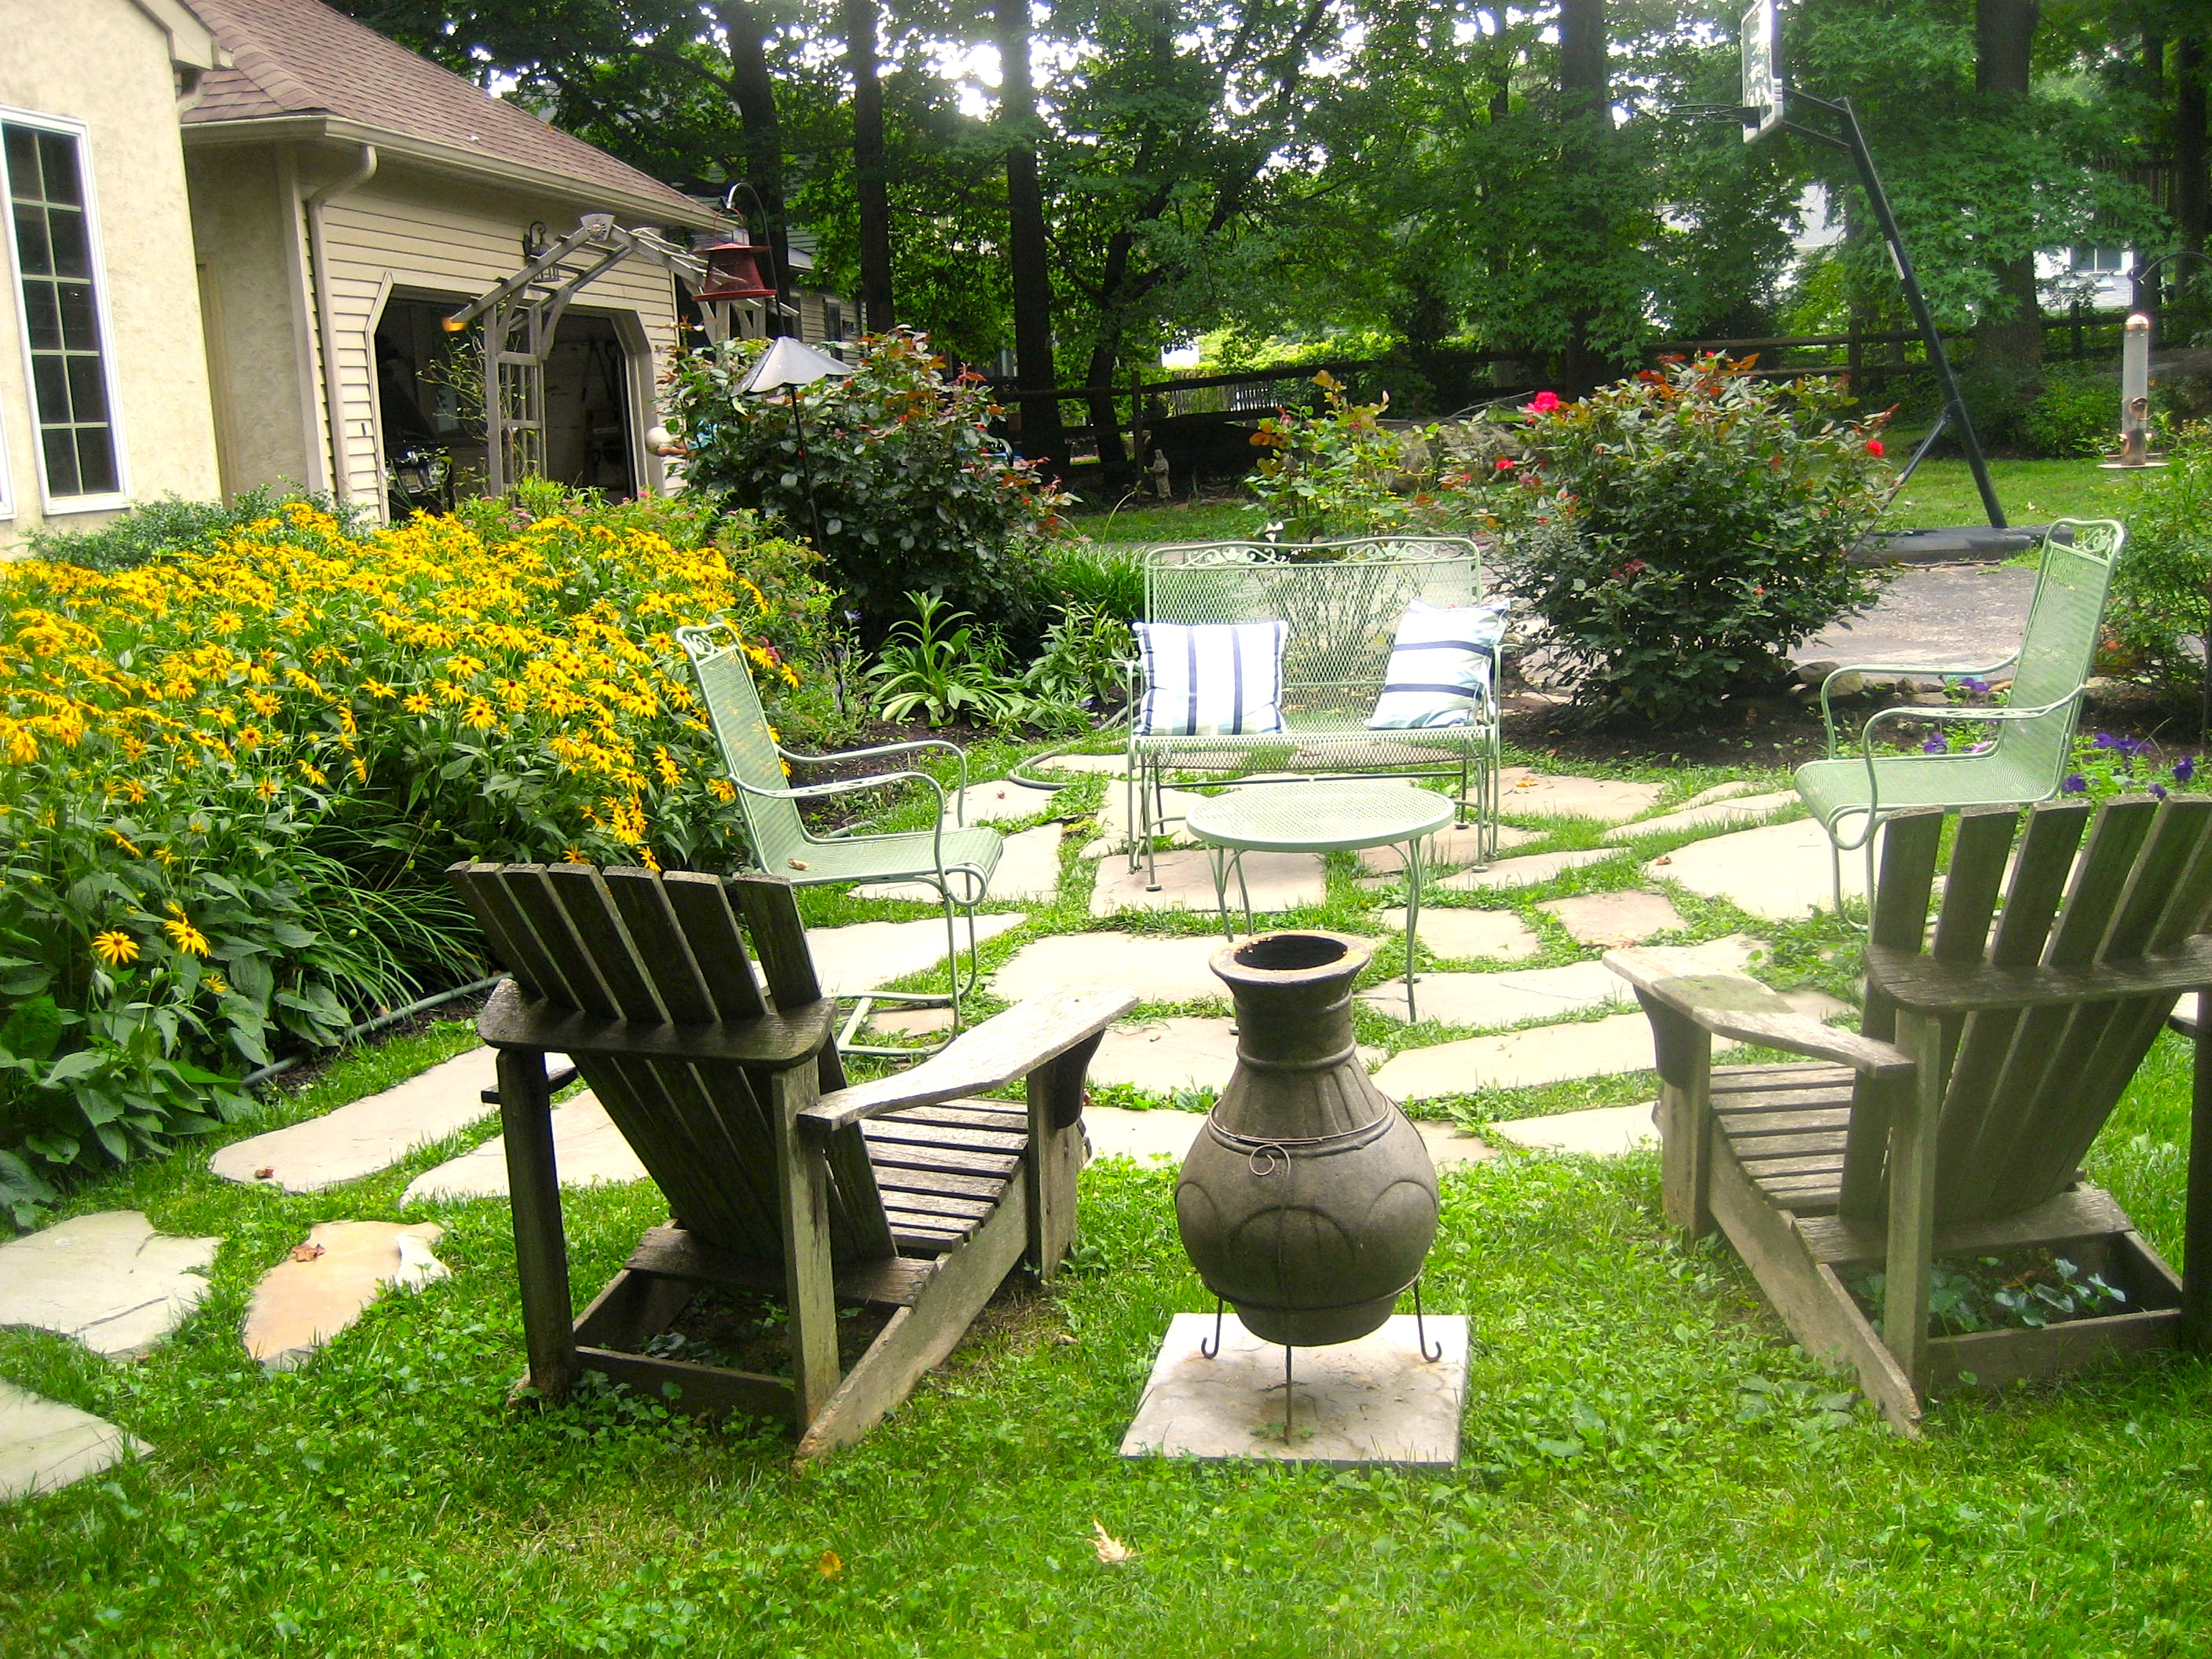 A Quick and Dirty Flagstone Patio | A Girl's Guide to DIY on Flagstone Backyard Patio id=87570